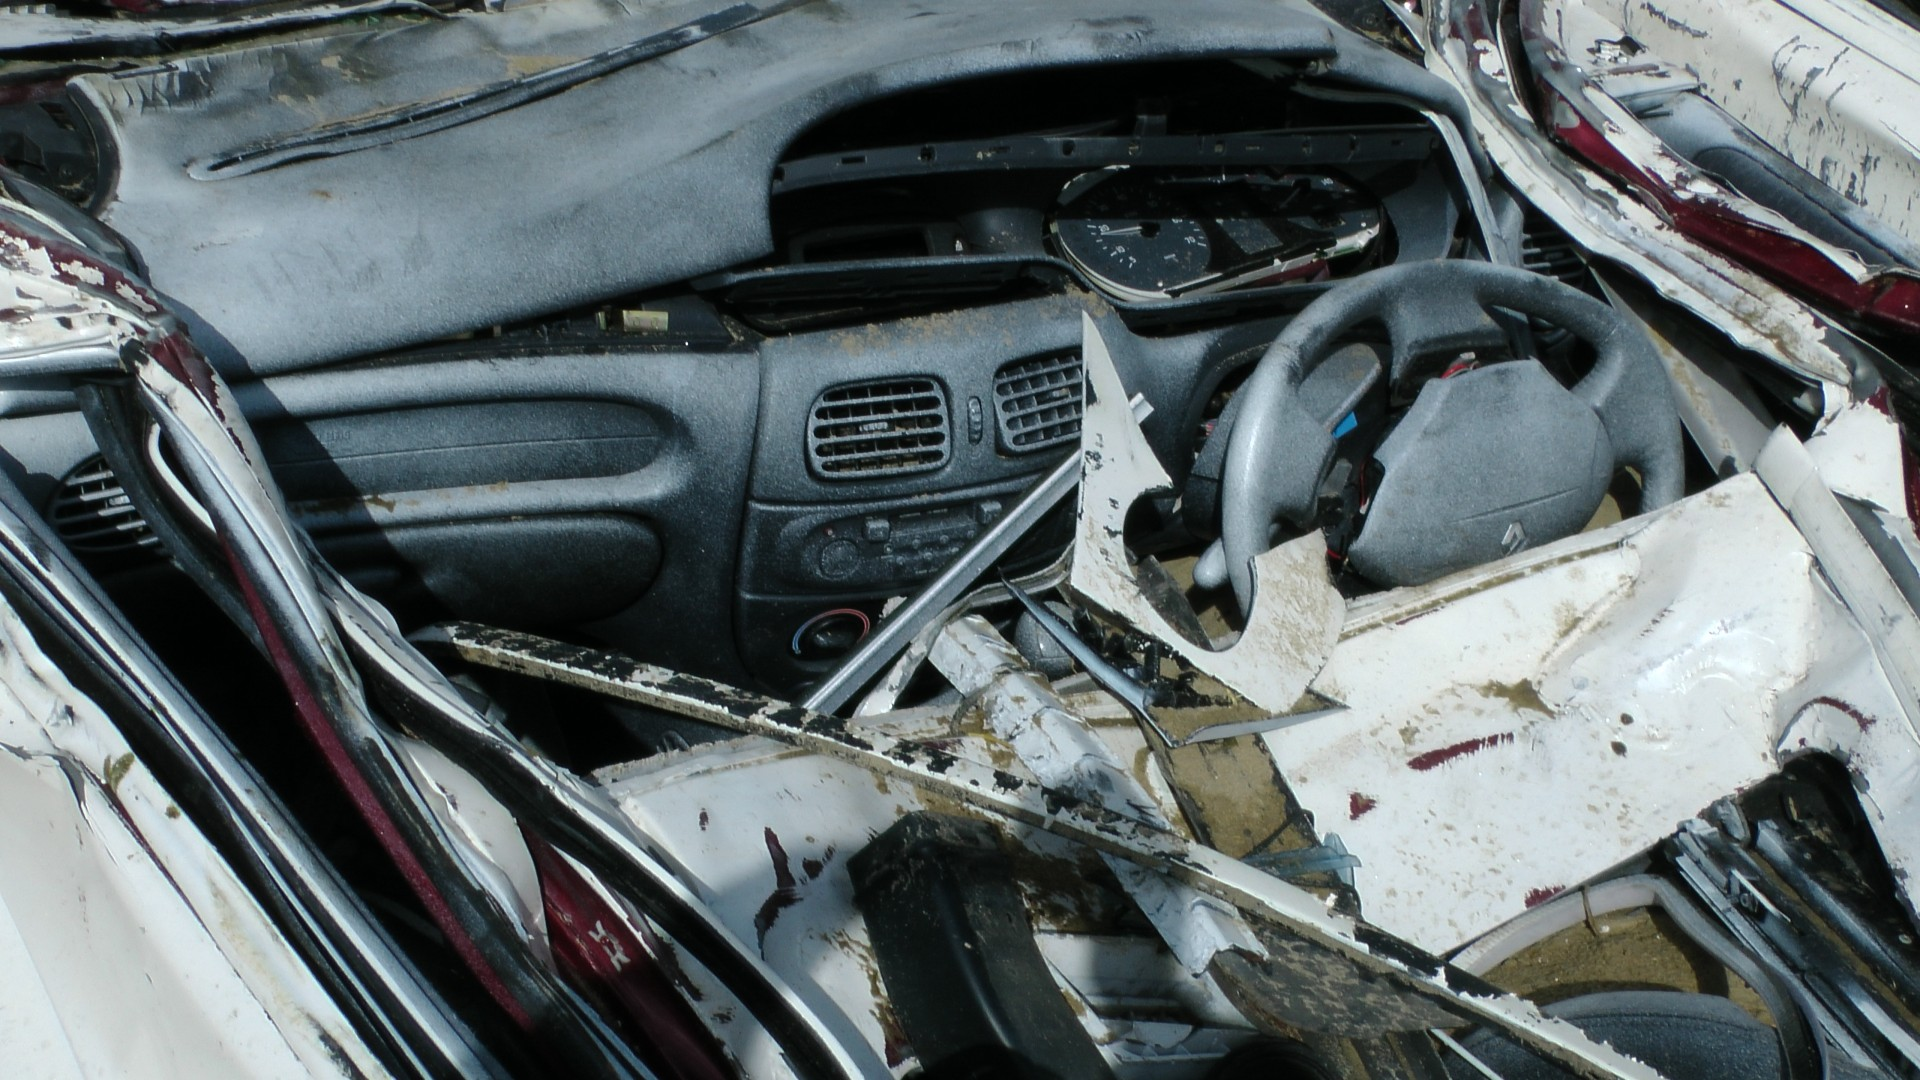 Scrapping A Car – How Much Do You Get For Scrapping A Car?